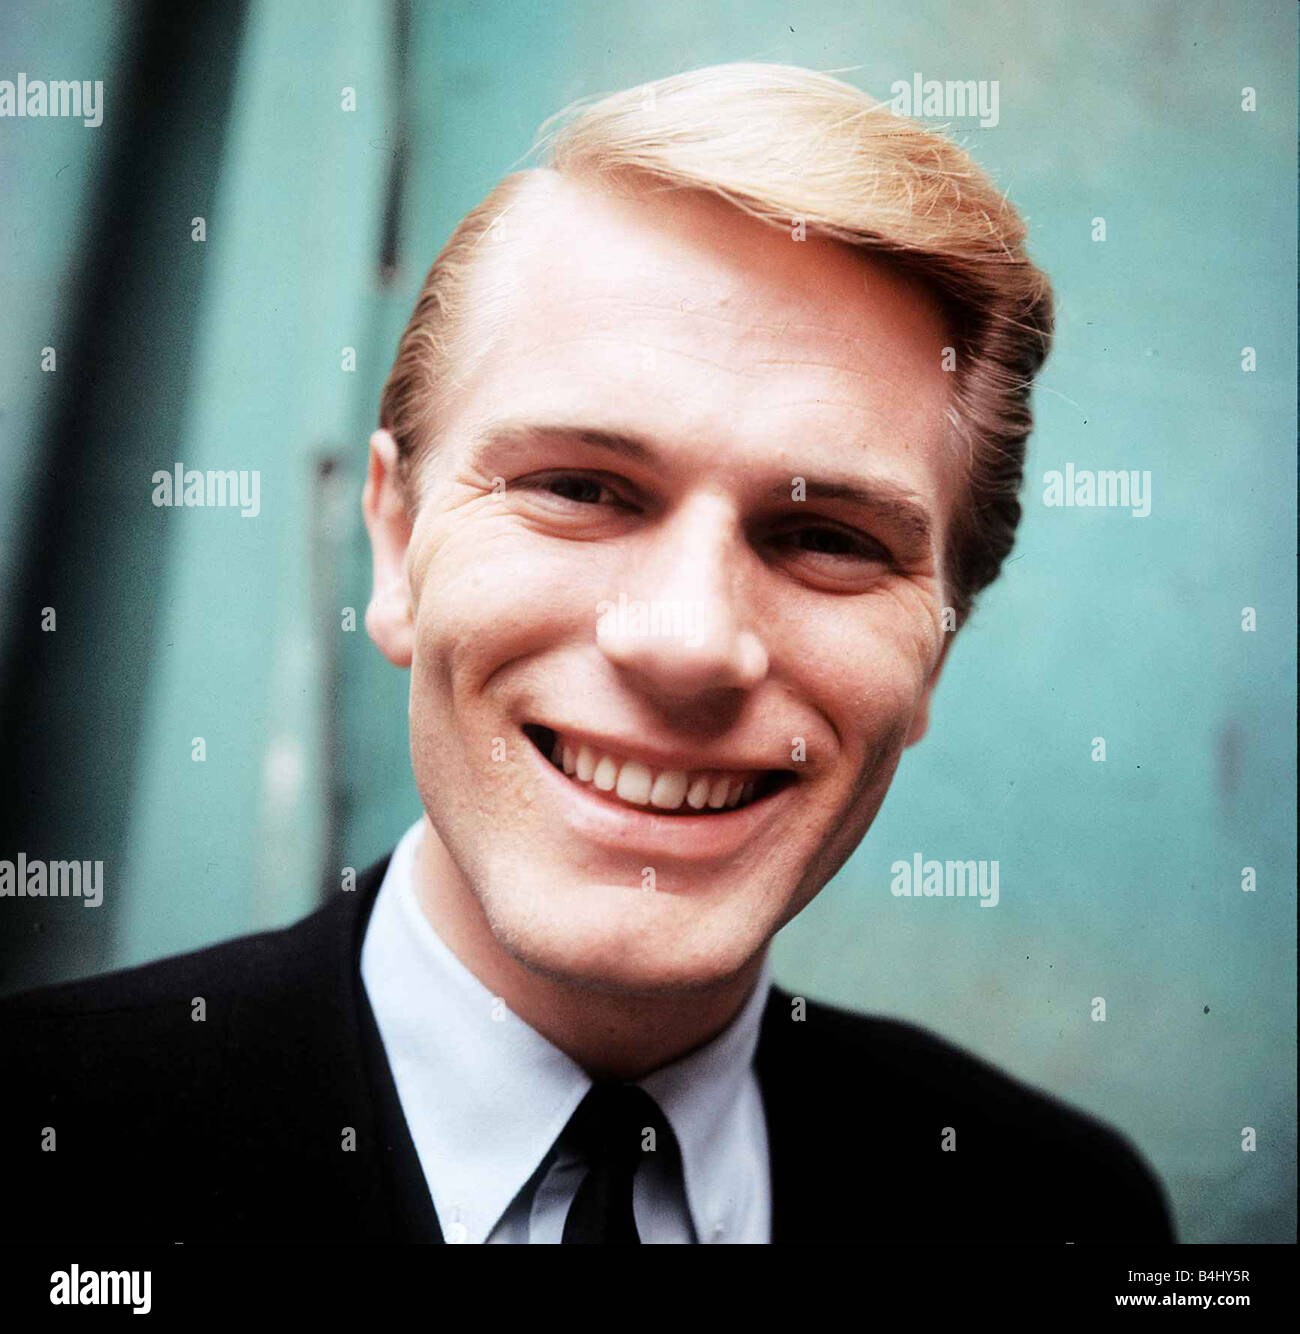 Adam Faith Stock Photos & Adam Faith Stock Images - Alamy